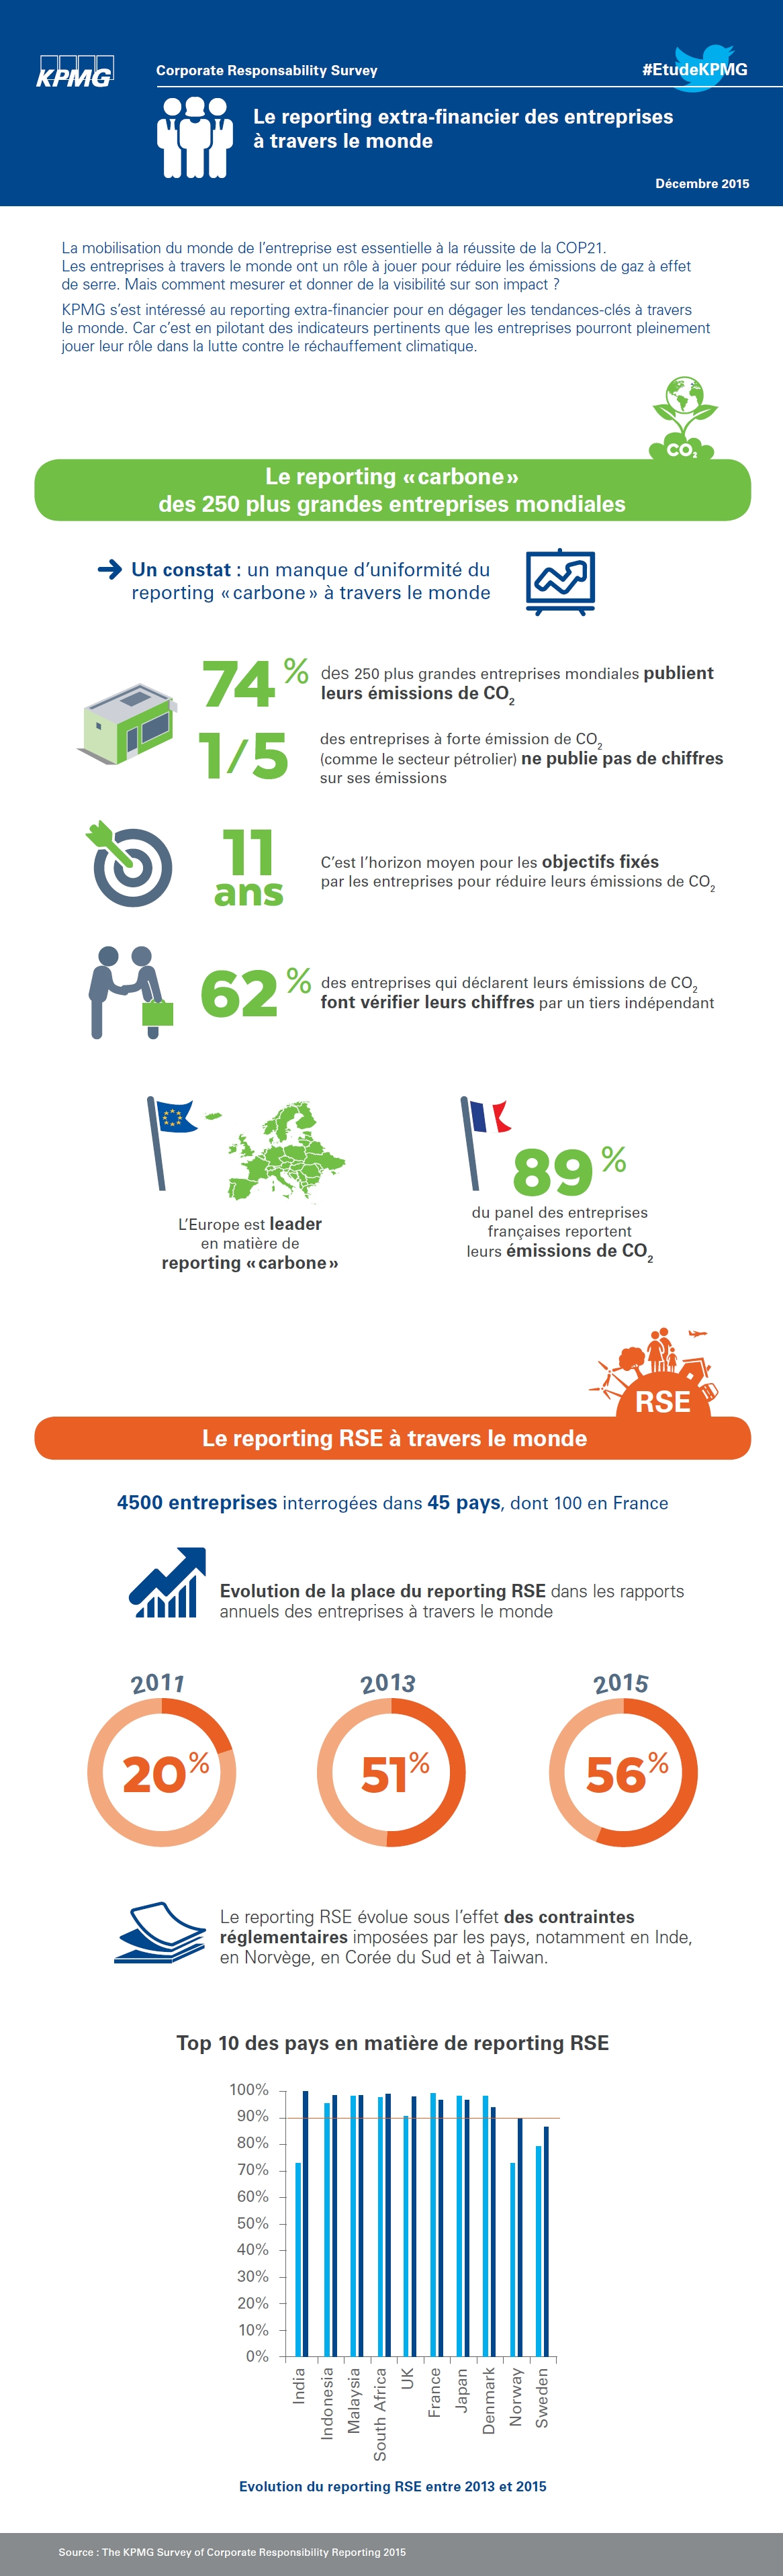 http://www.kpmg.com/fr/fr/issuesandinsights/articlespublications/pages/kpmg-survey-corporate-responsibility-reporting-2015.aspx